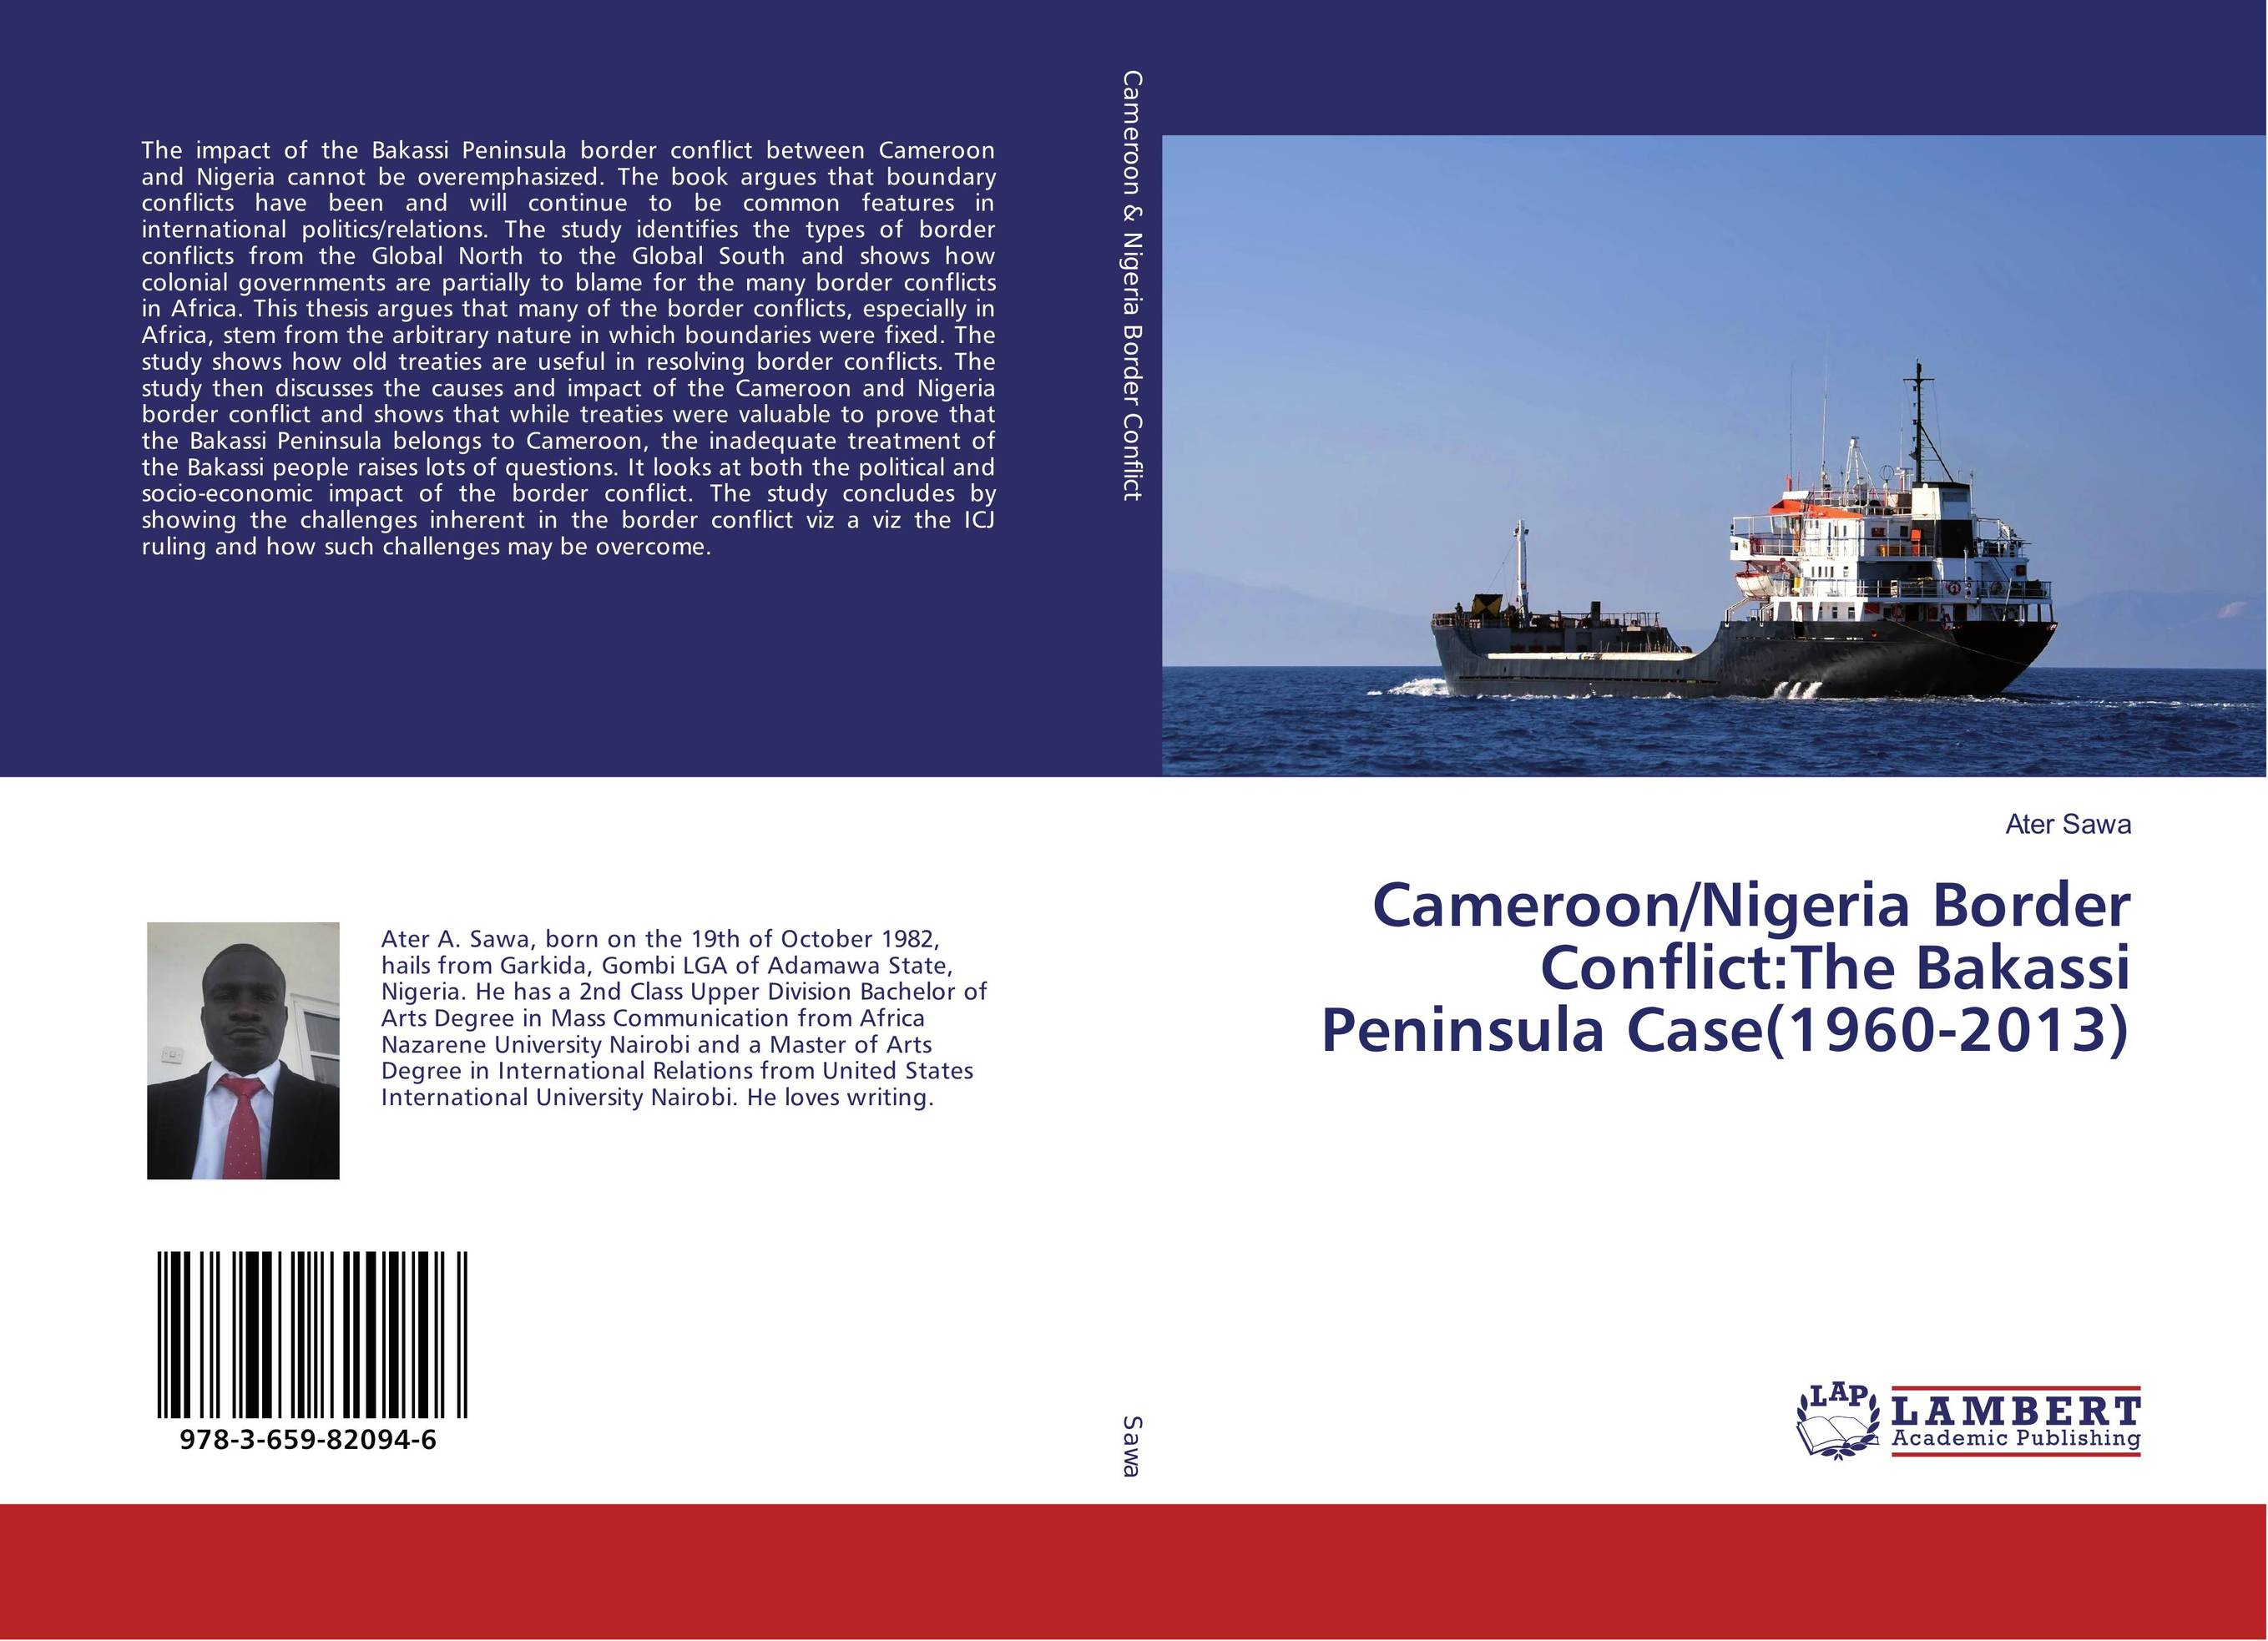 Cameroon/Nigeria Border Conflict:The Bakassi Peninsula Case(1960-2013) trans border ethnic hegemony and political conflict in africa